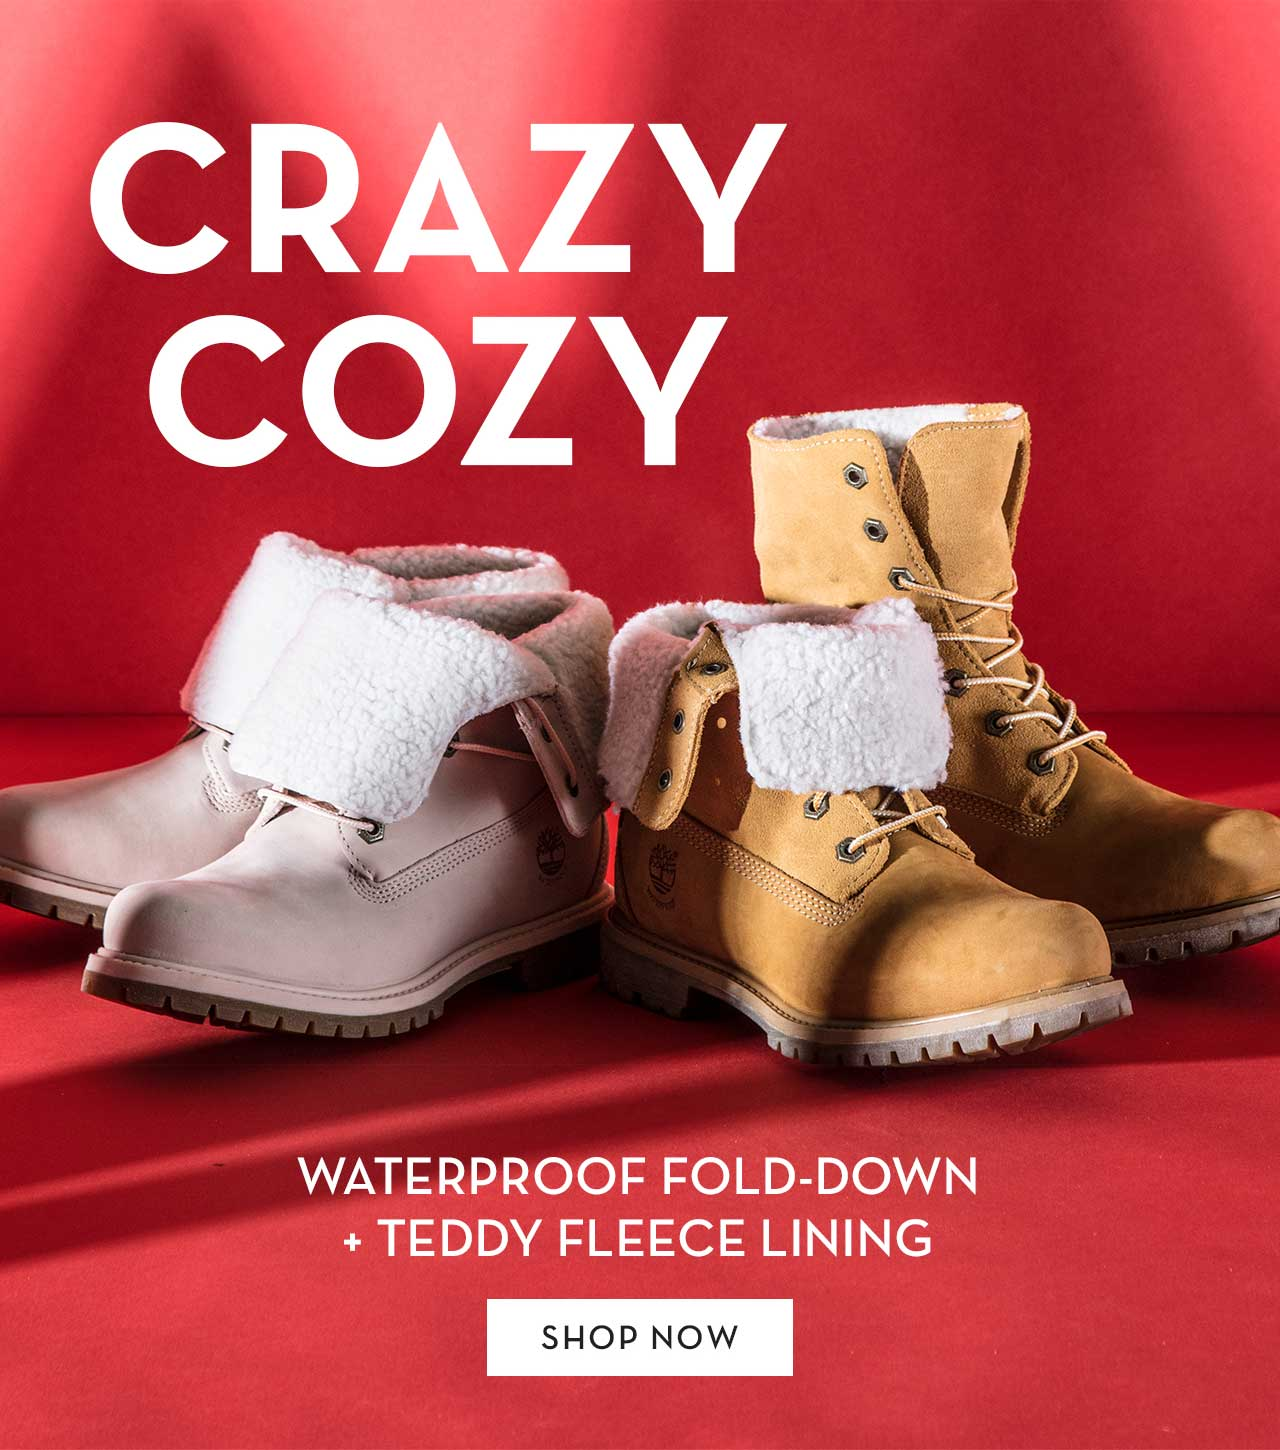 Crazy Cozy Waterproof Fold-Down + Teddy Fleece Lining Shop Now